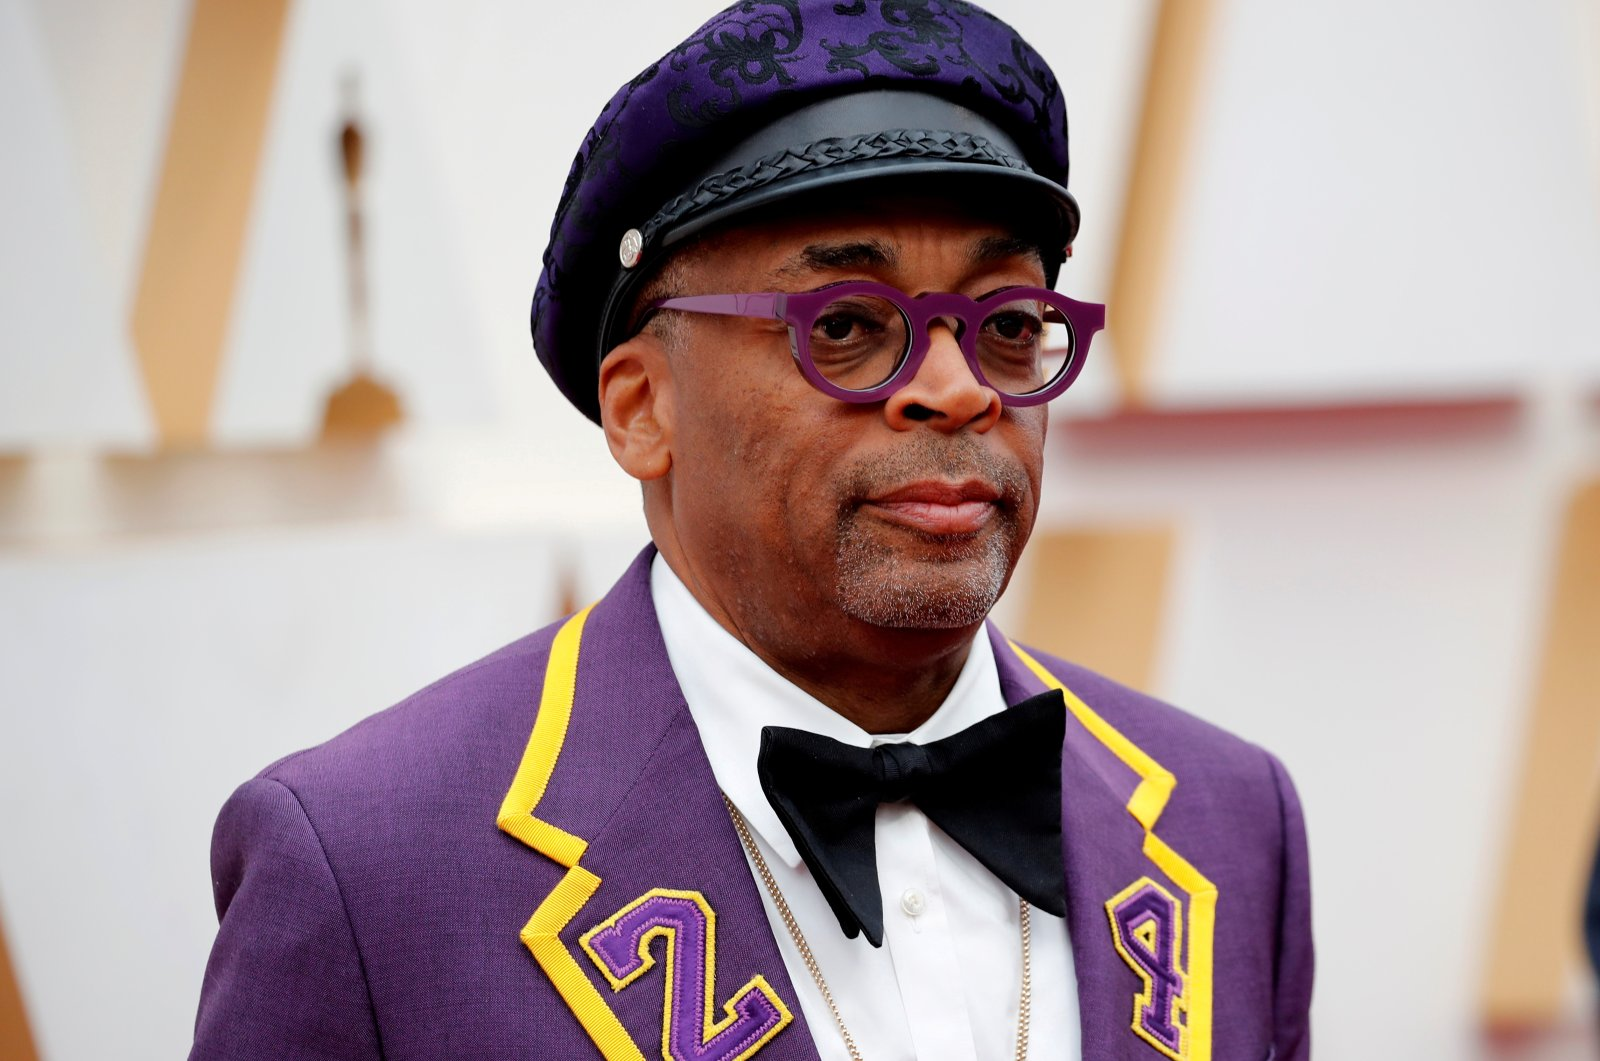 Director Spike Lee, wearing a coat with the number 24 in memory of NBA player Kobe Bryant, poses on the red carpet during the Oscars arrivals at the 92nd Academy Awards in Hollywood, Los Angeles, California, U.S., Feb. 9, 2020. (Reuters Photo)